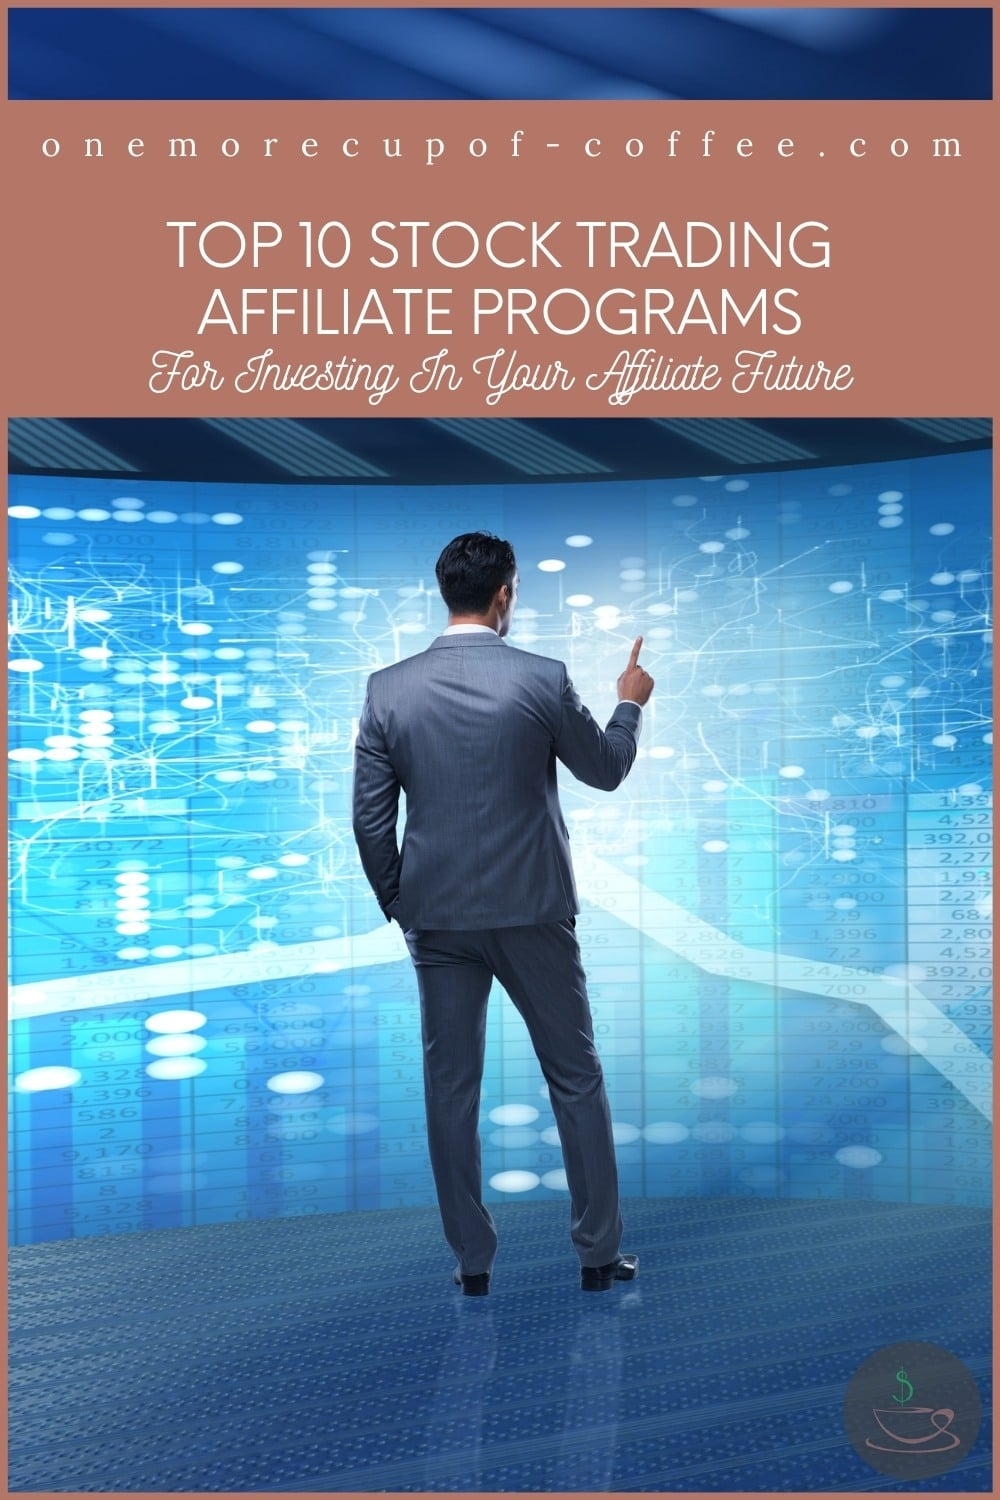 """a male stock trader with his back to the camera, standing in front of a big lcd touch screen with stock trading information; with text overlay in brown banner """"Top 10 Stock Trading Affiliate Programs For Investing In Your Affiliate Future"""""""